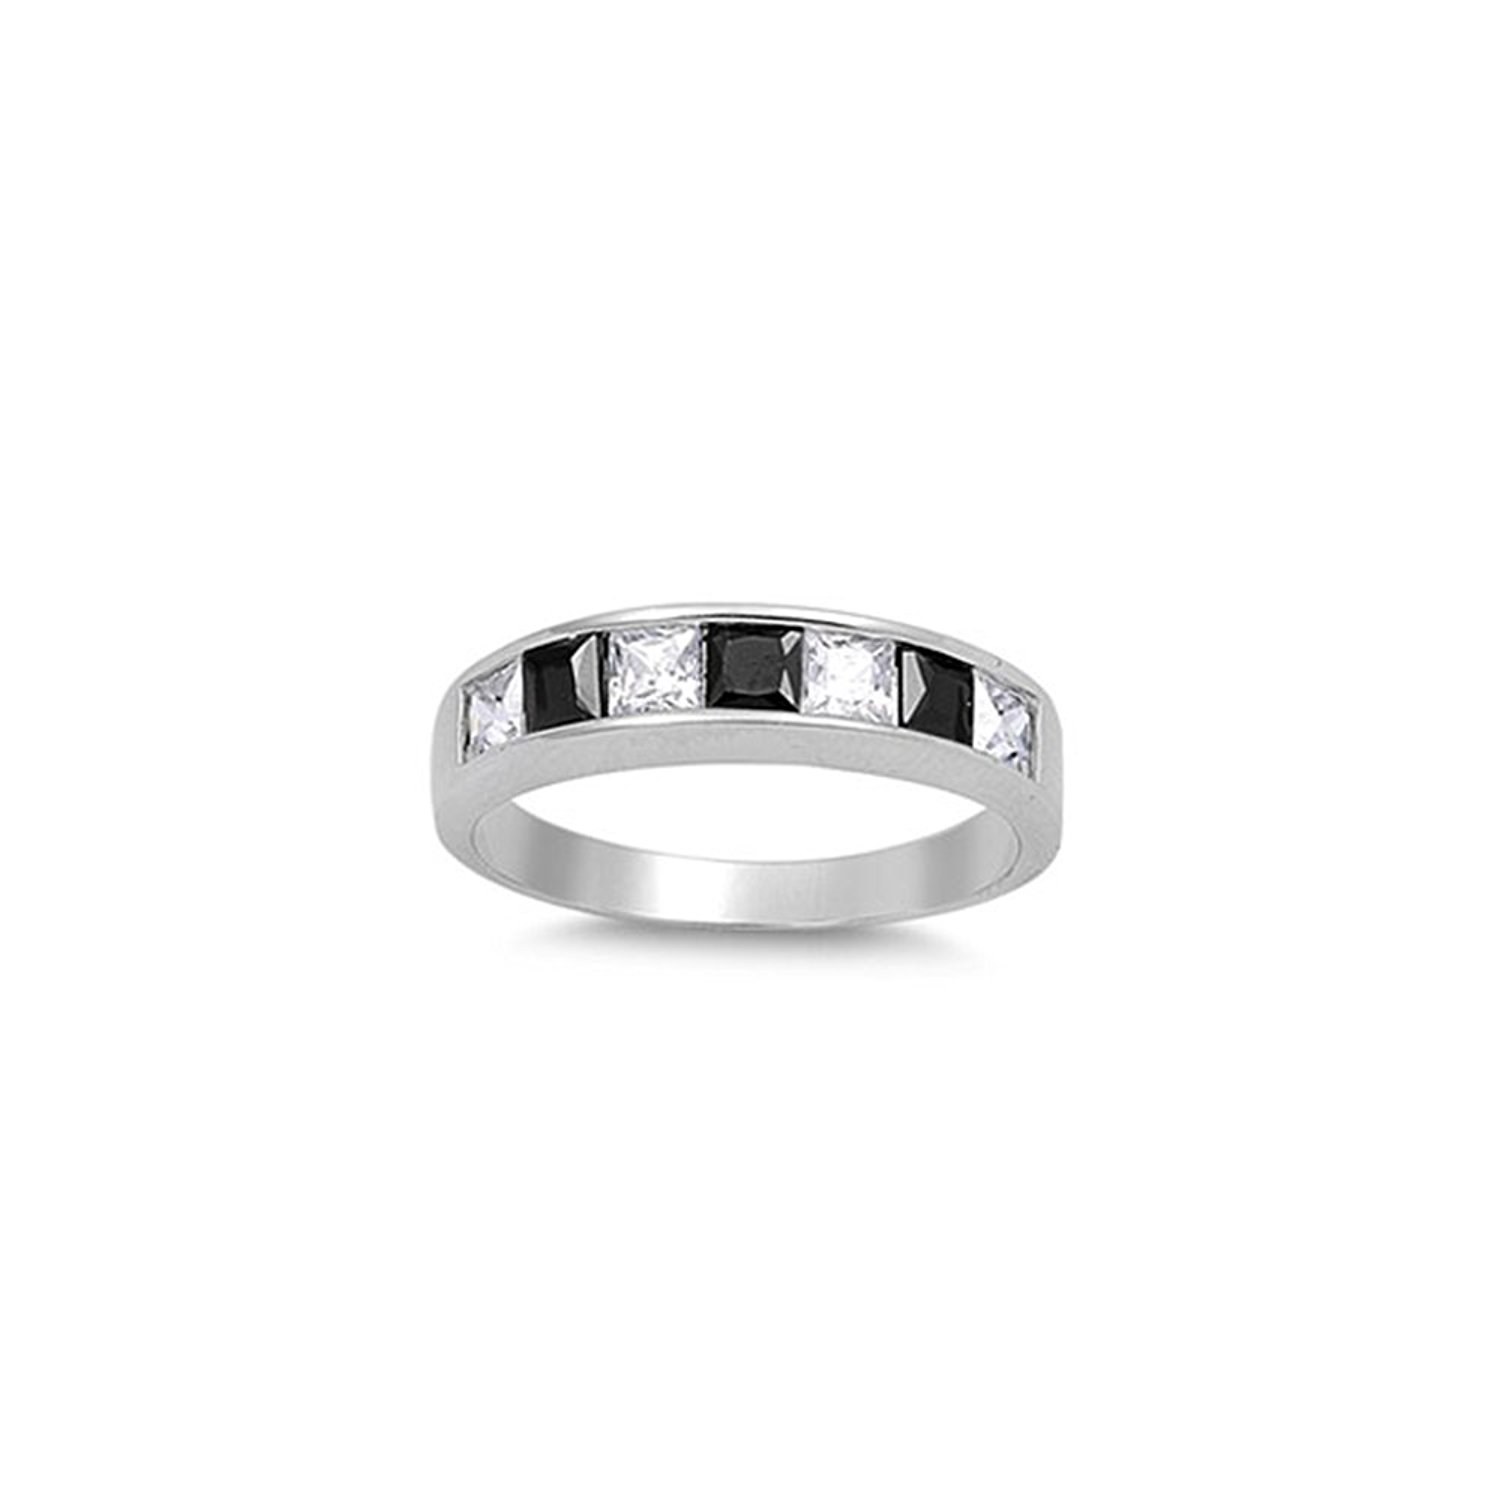 Noureda Sterling Silver Alternative Princess Cut Clear and Black Cz Band Ring with Face Height of 4MM